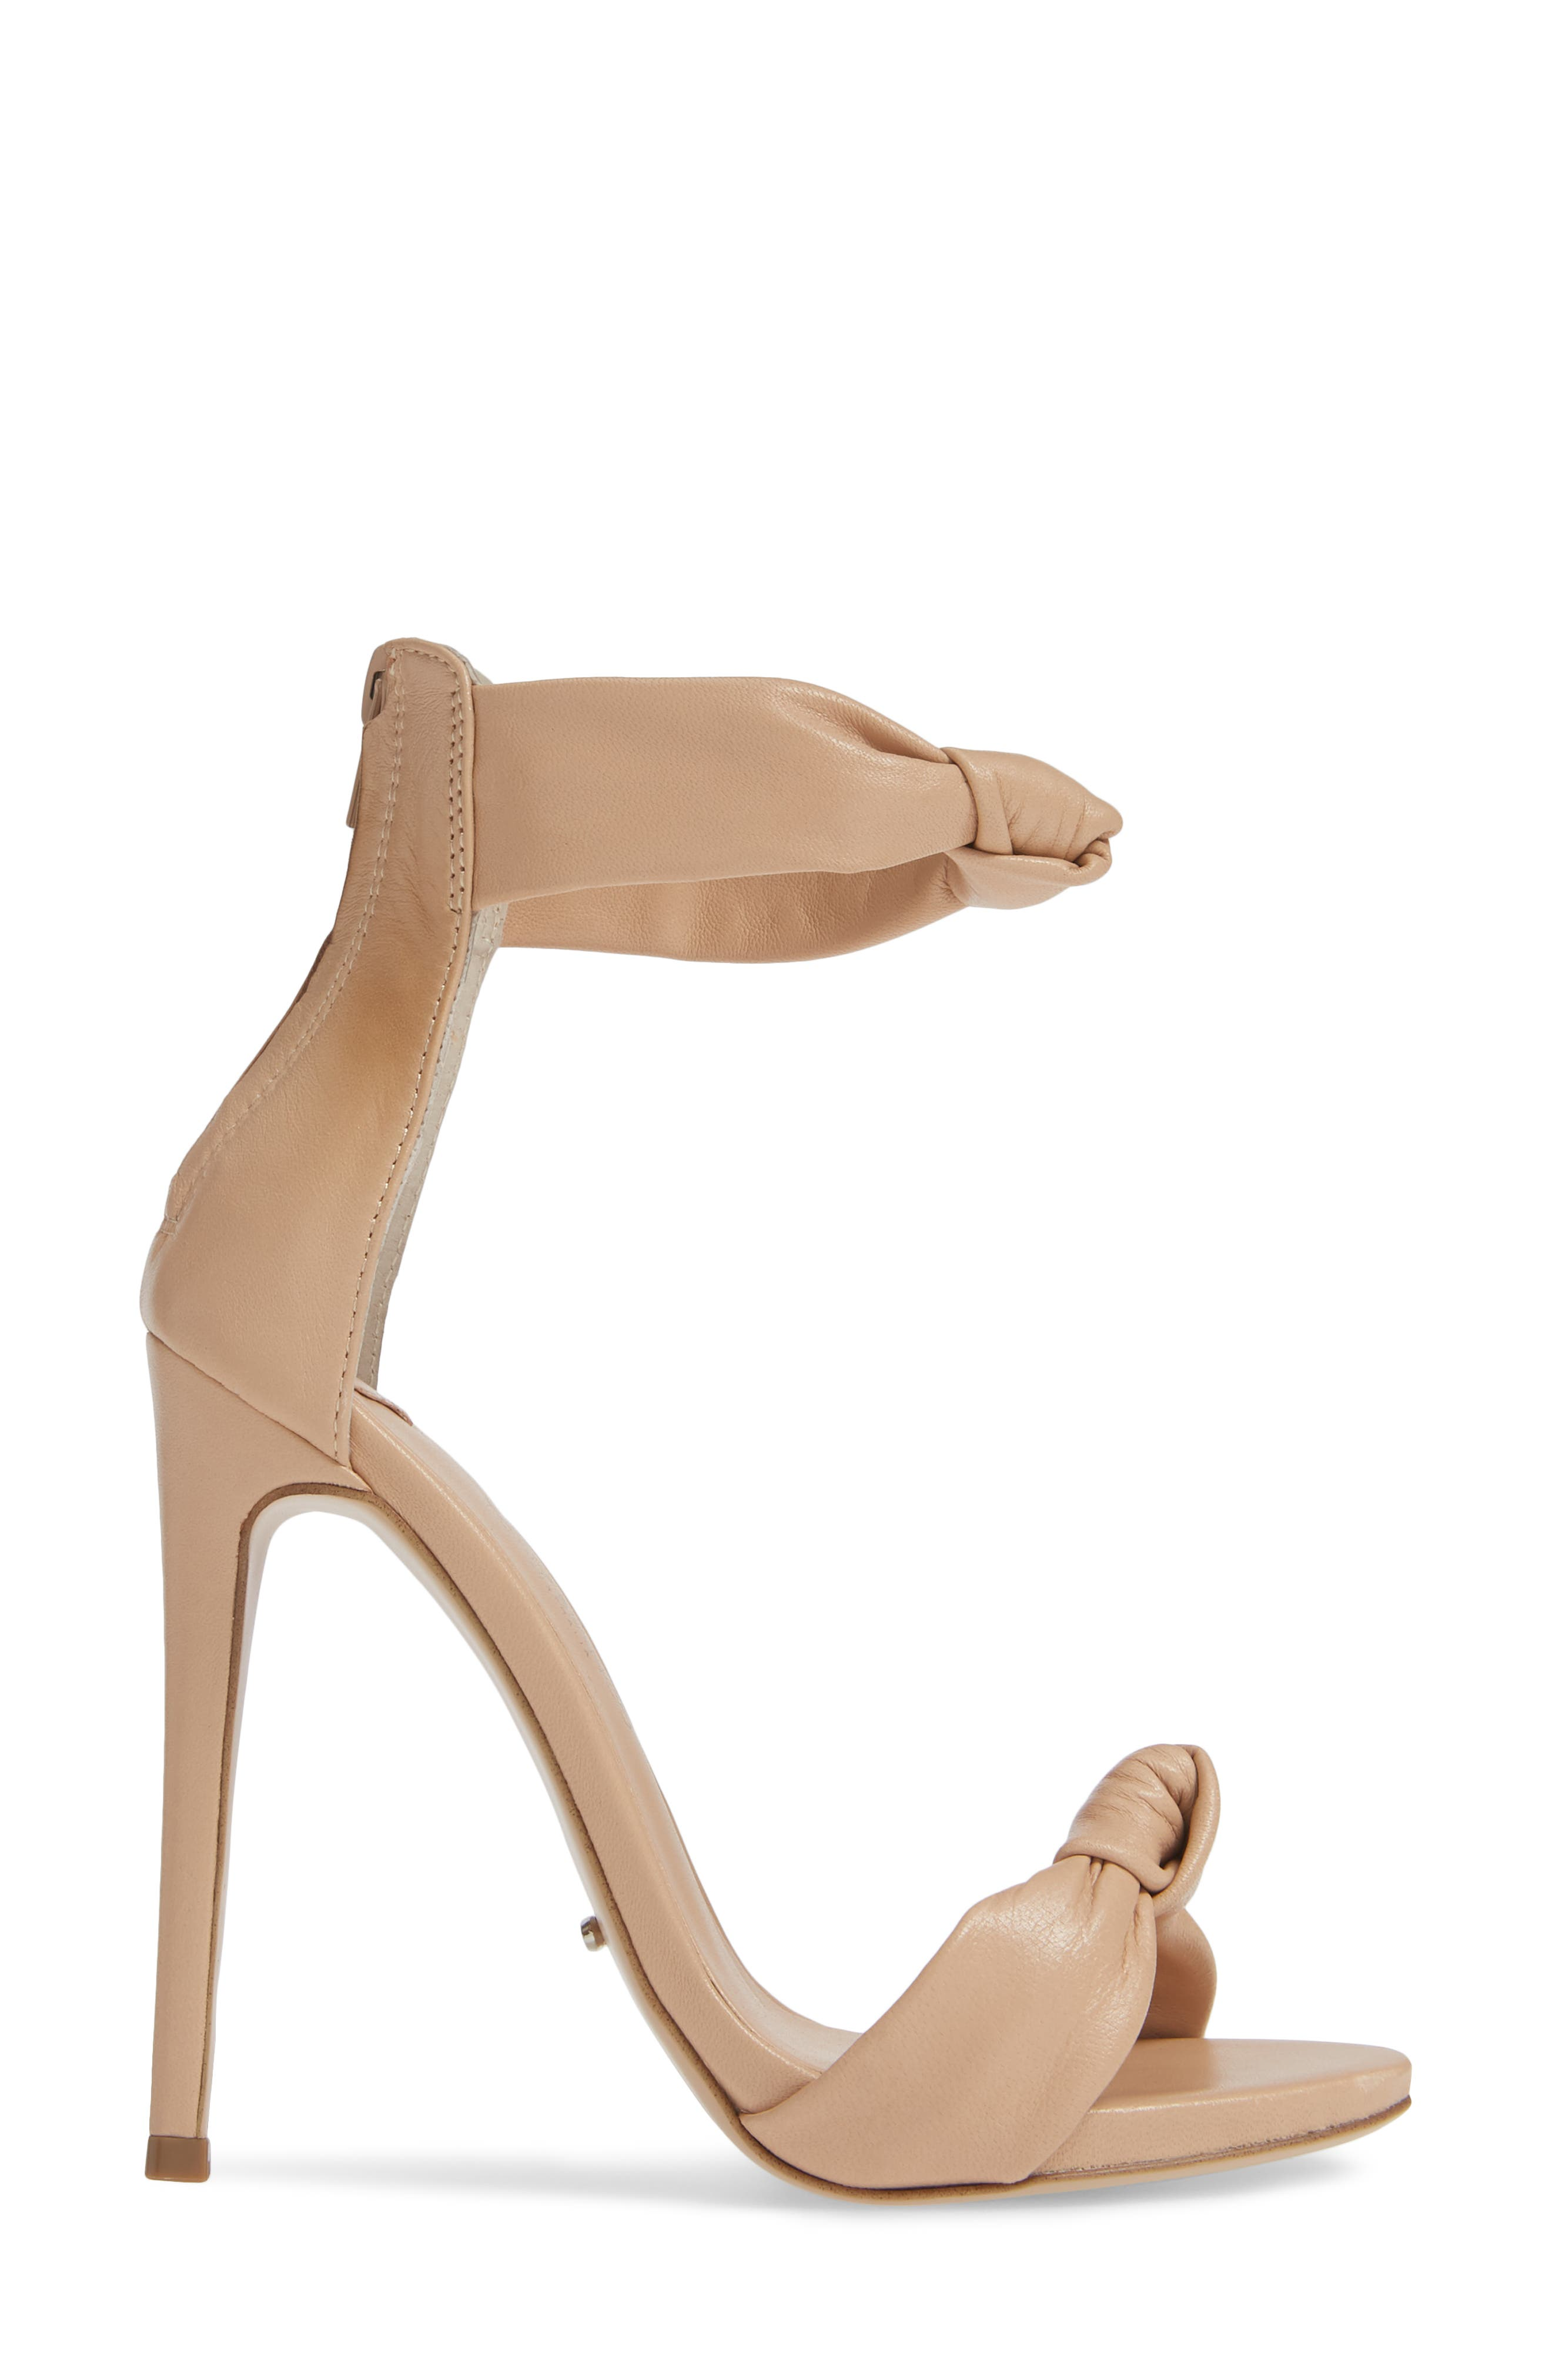 Anabelle Sandal,                             Alternate thumbnail 3, color,                             BEIGE LEATHER